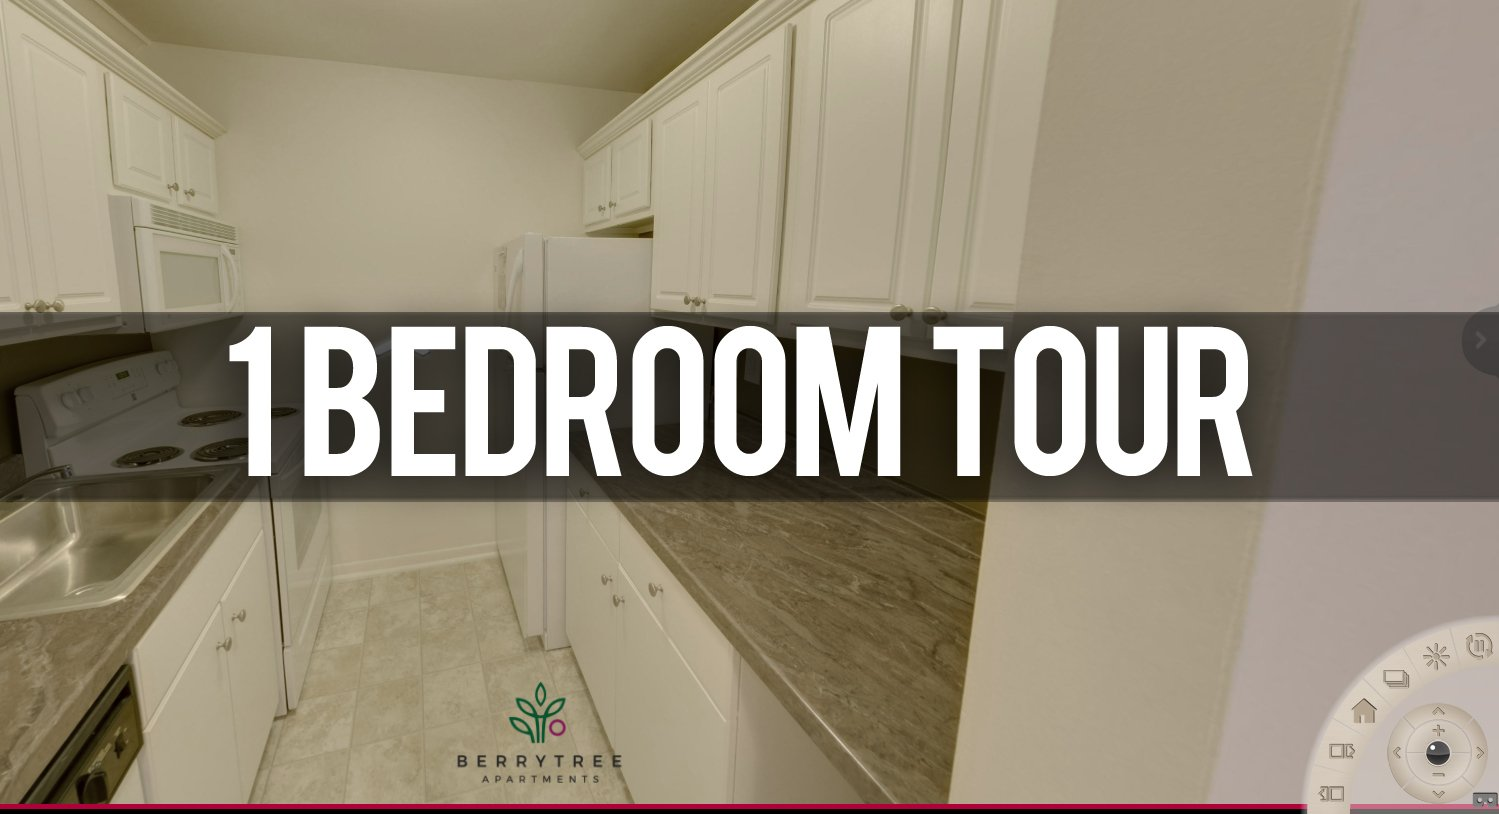 Virtual Tour 1 Bedroom Apartment Berrytree Apartments near Michigan State University